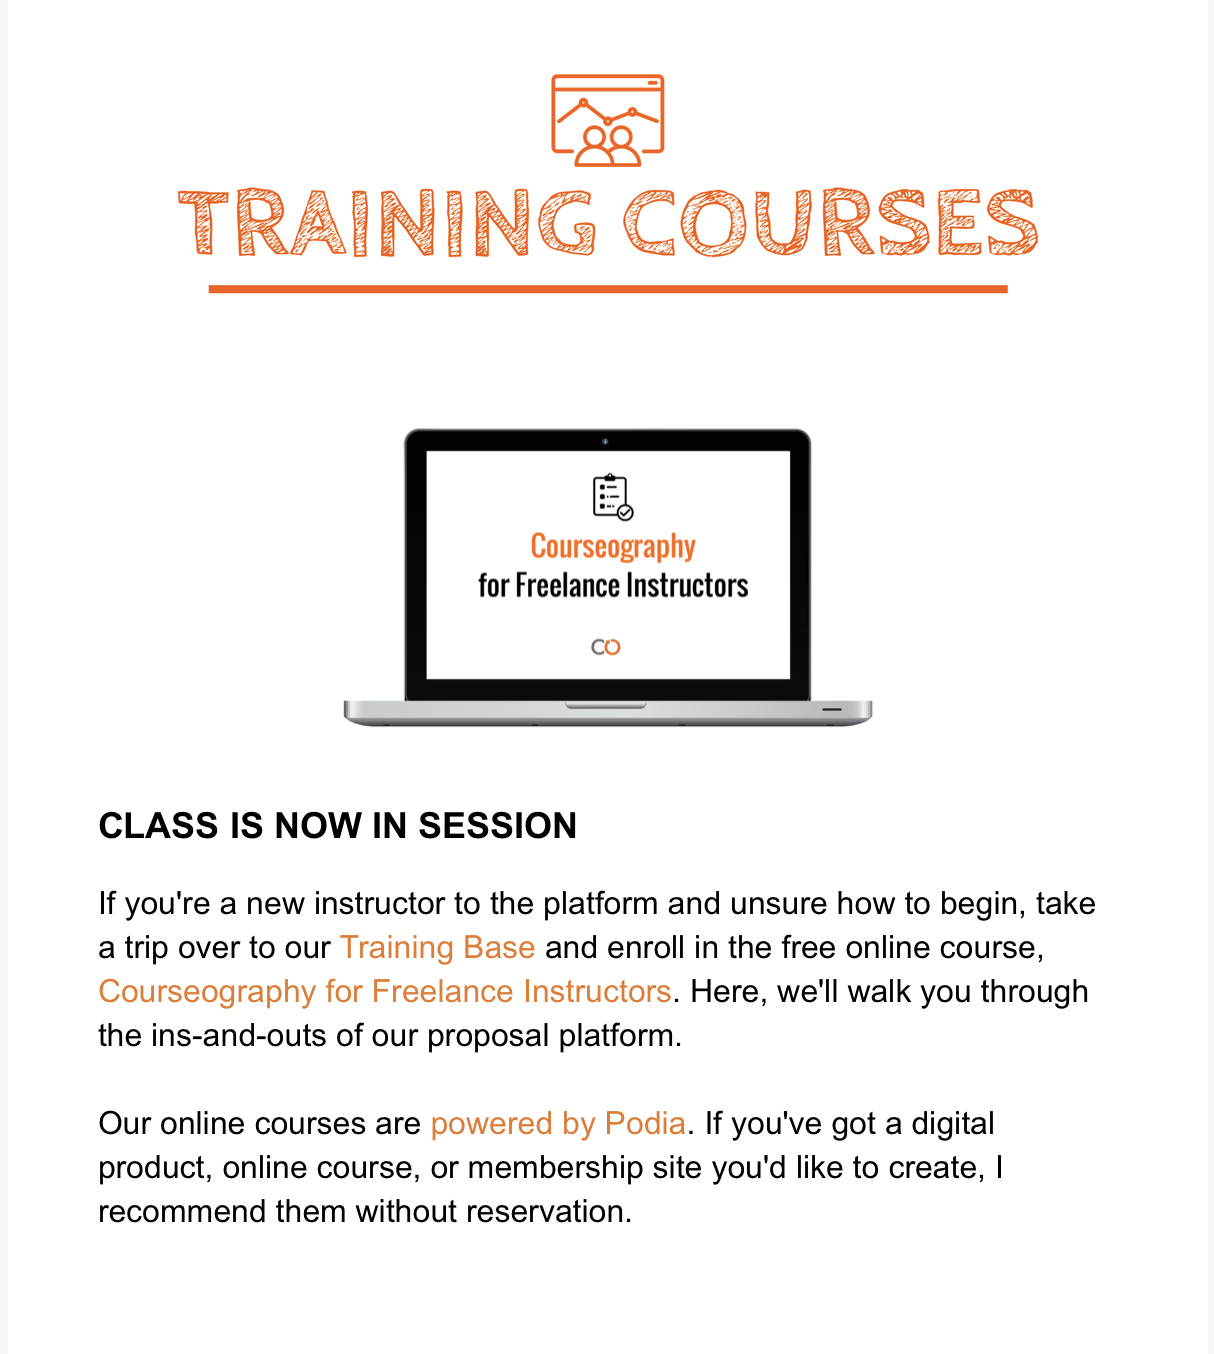 training-courses.png